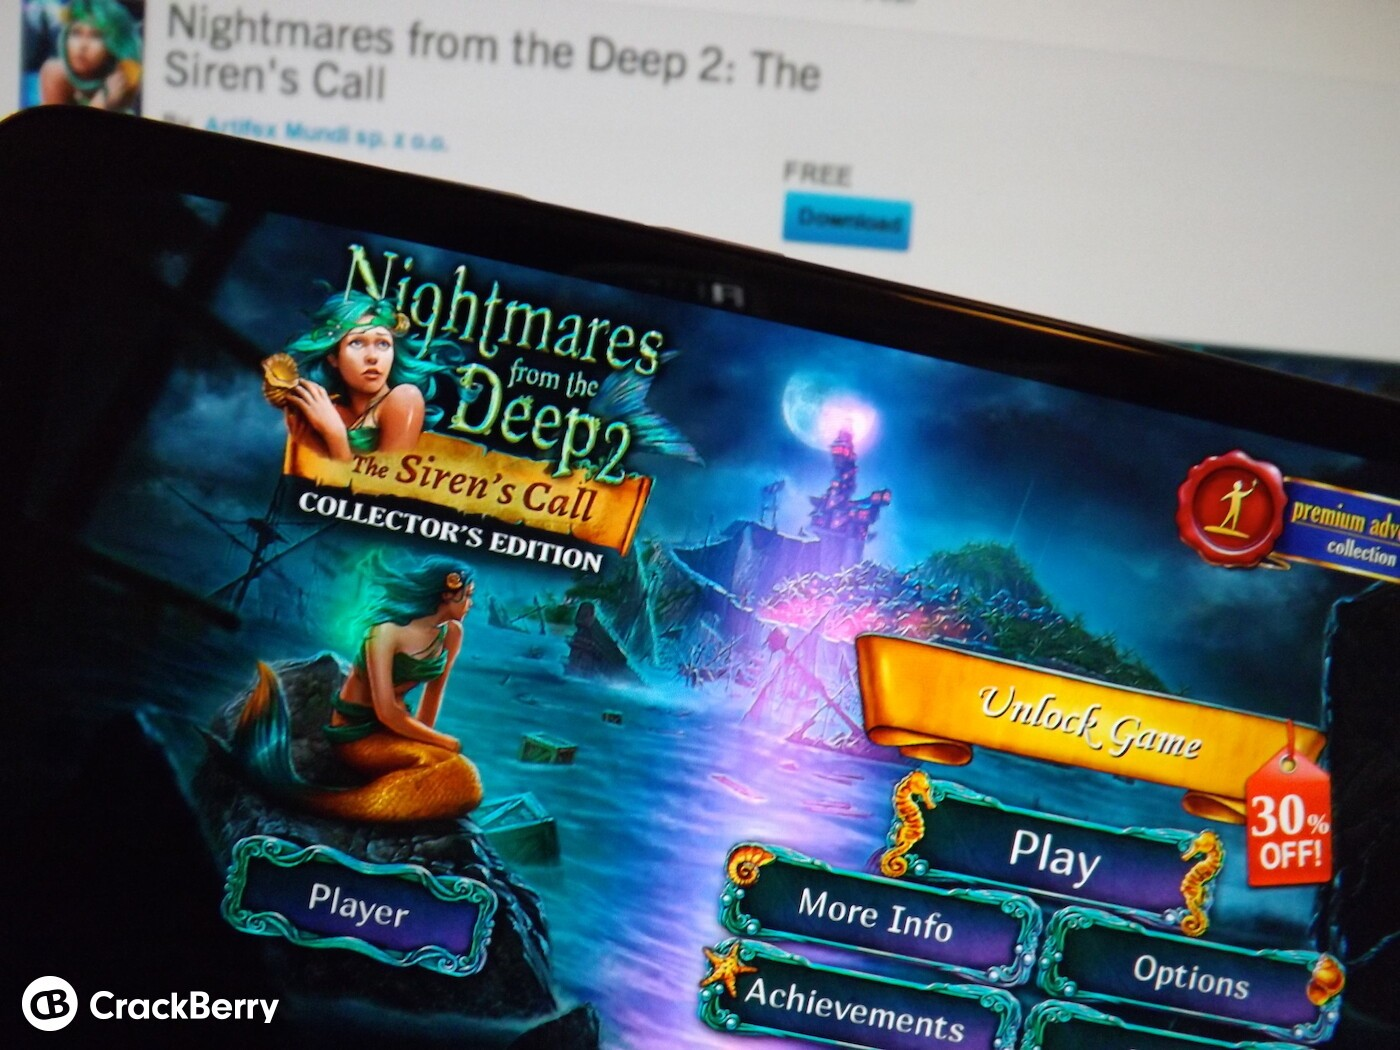 Nightmares of the Deep 2: The Siren's Call